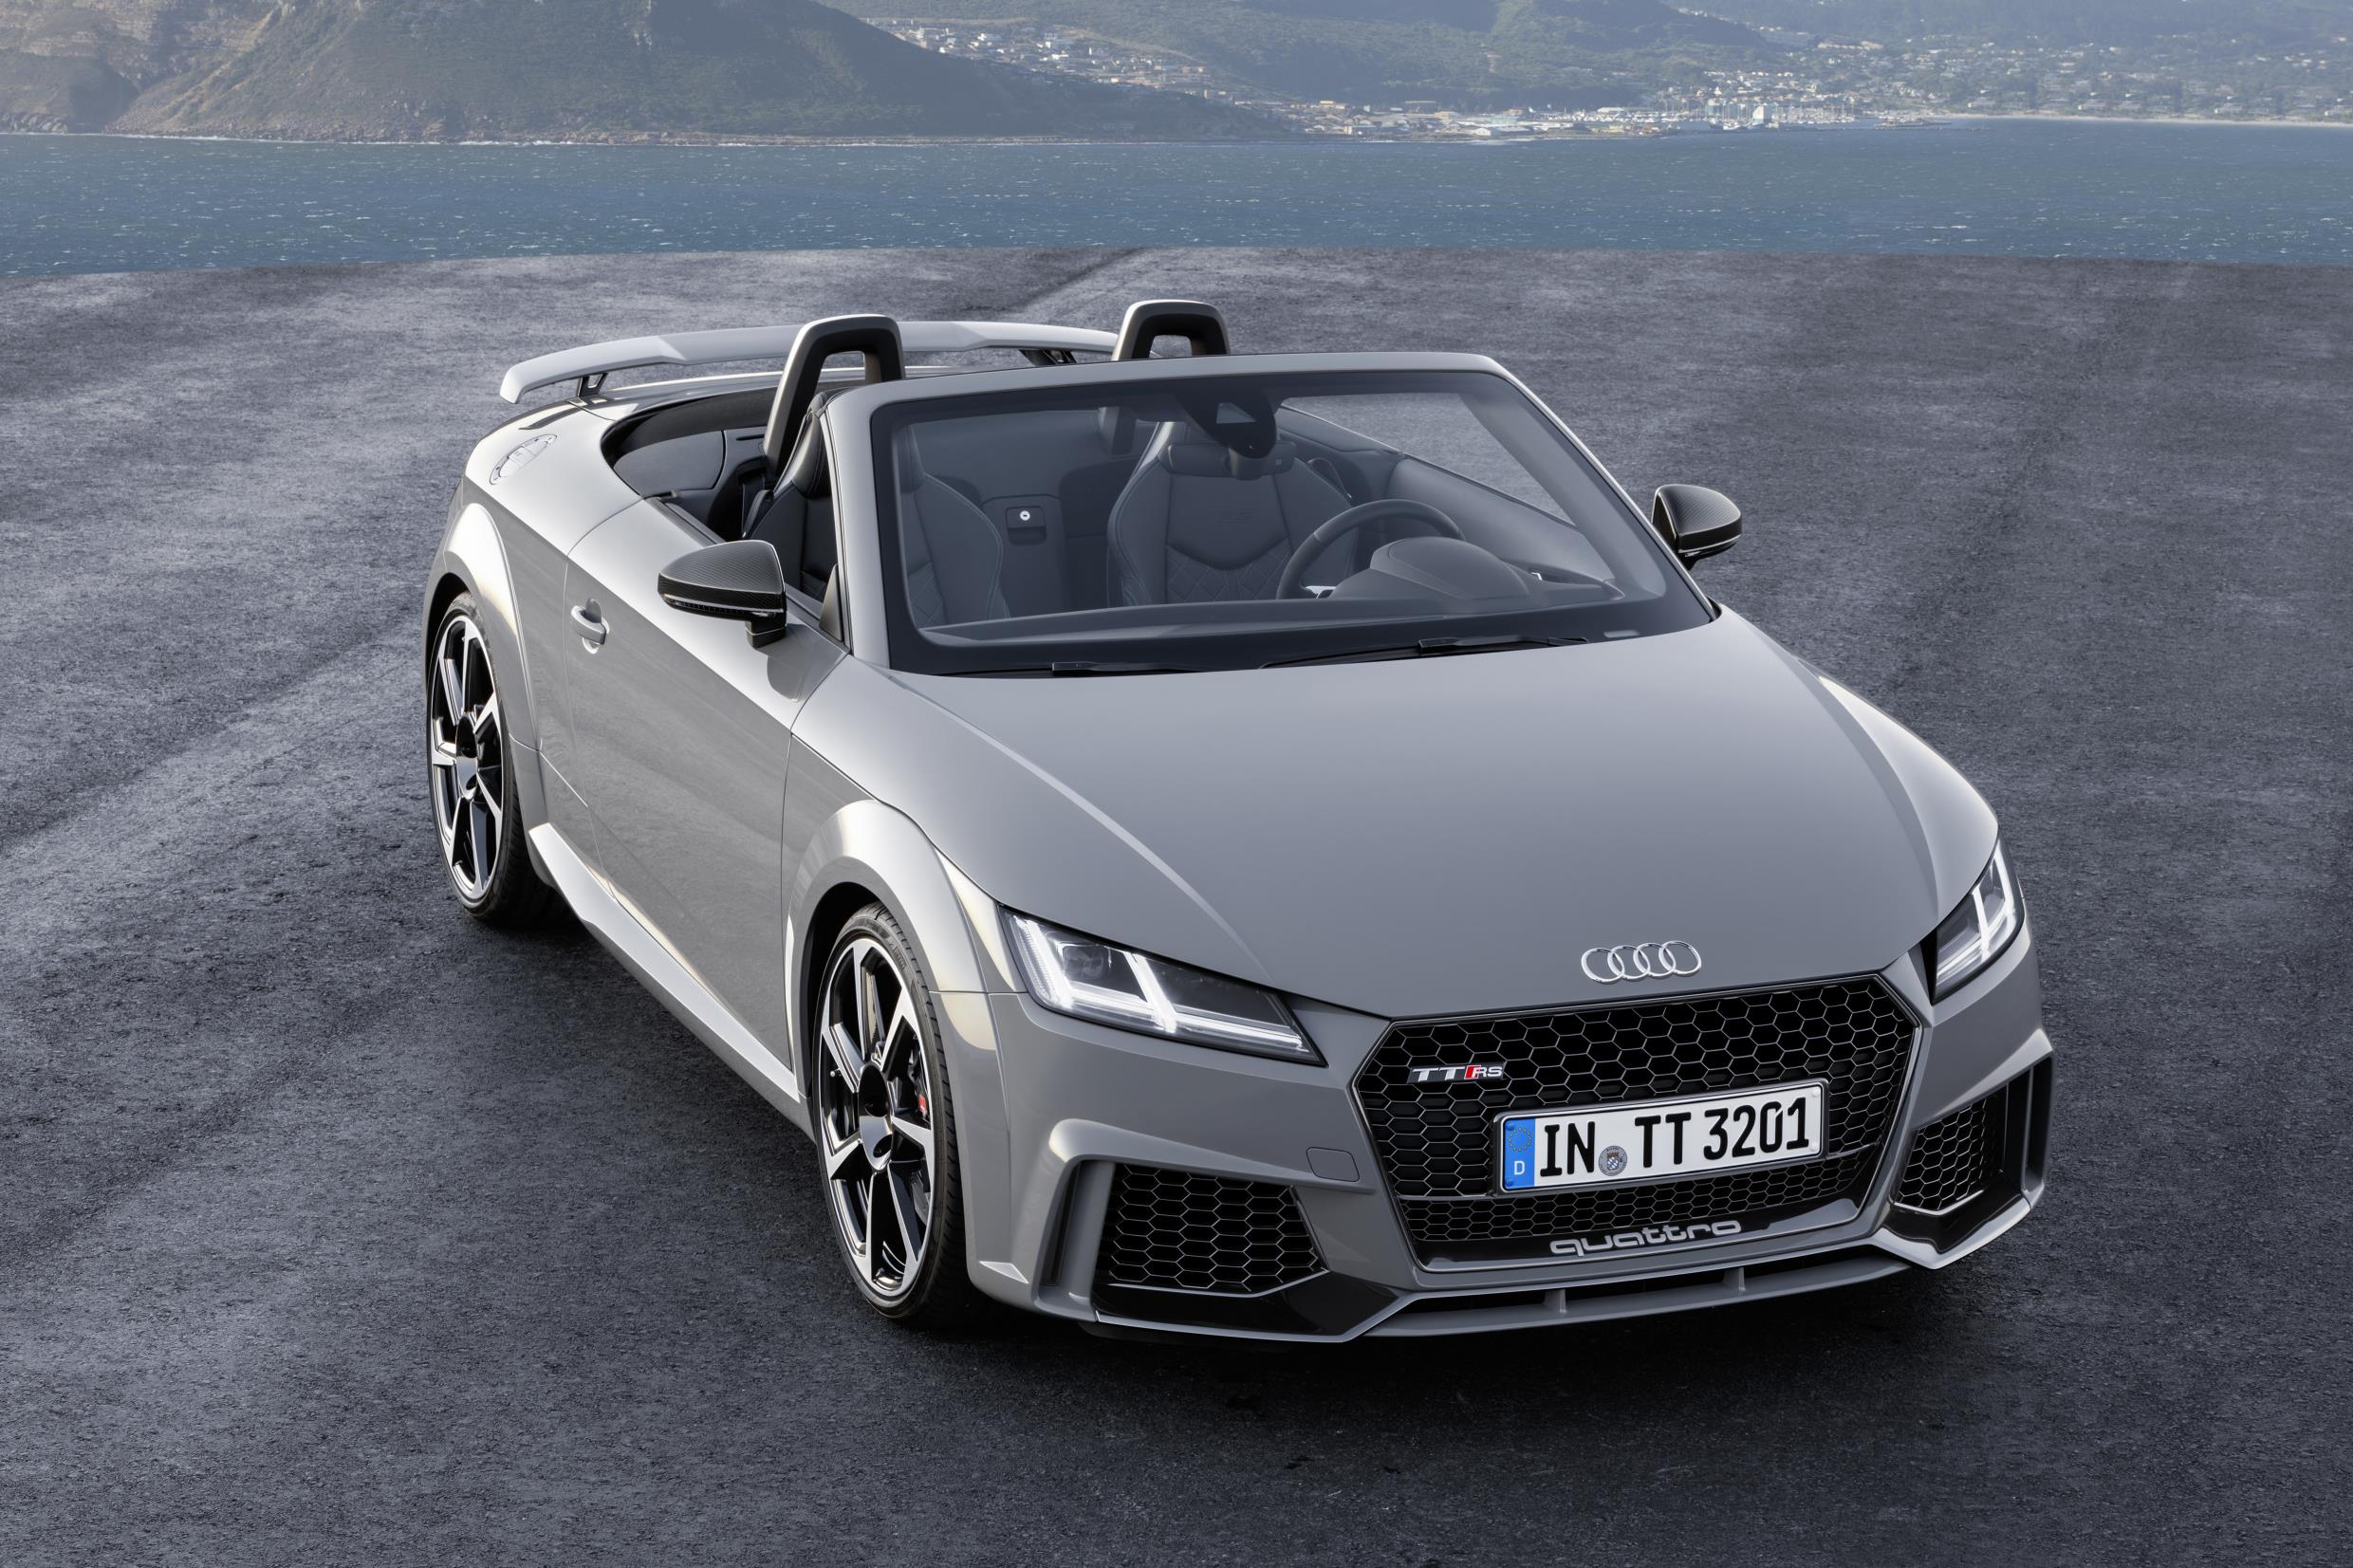 2017 Audi TT RS Priced From £51,800 In the UK - autoevolution